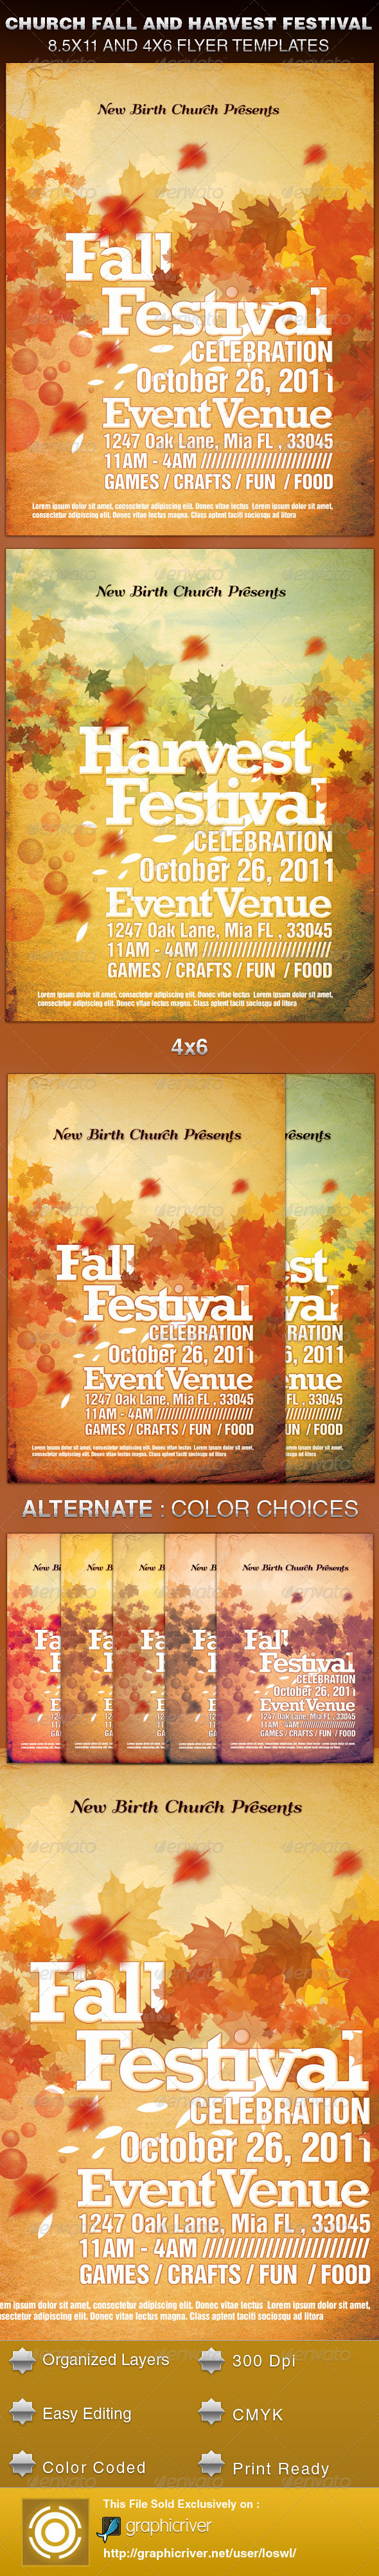 Church Fall and Harvest Festival Template - Church Flyers